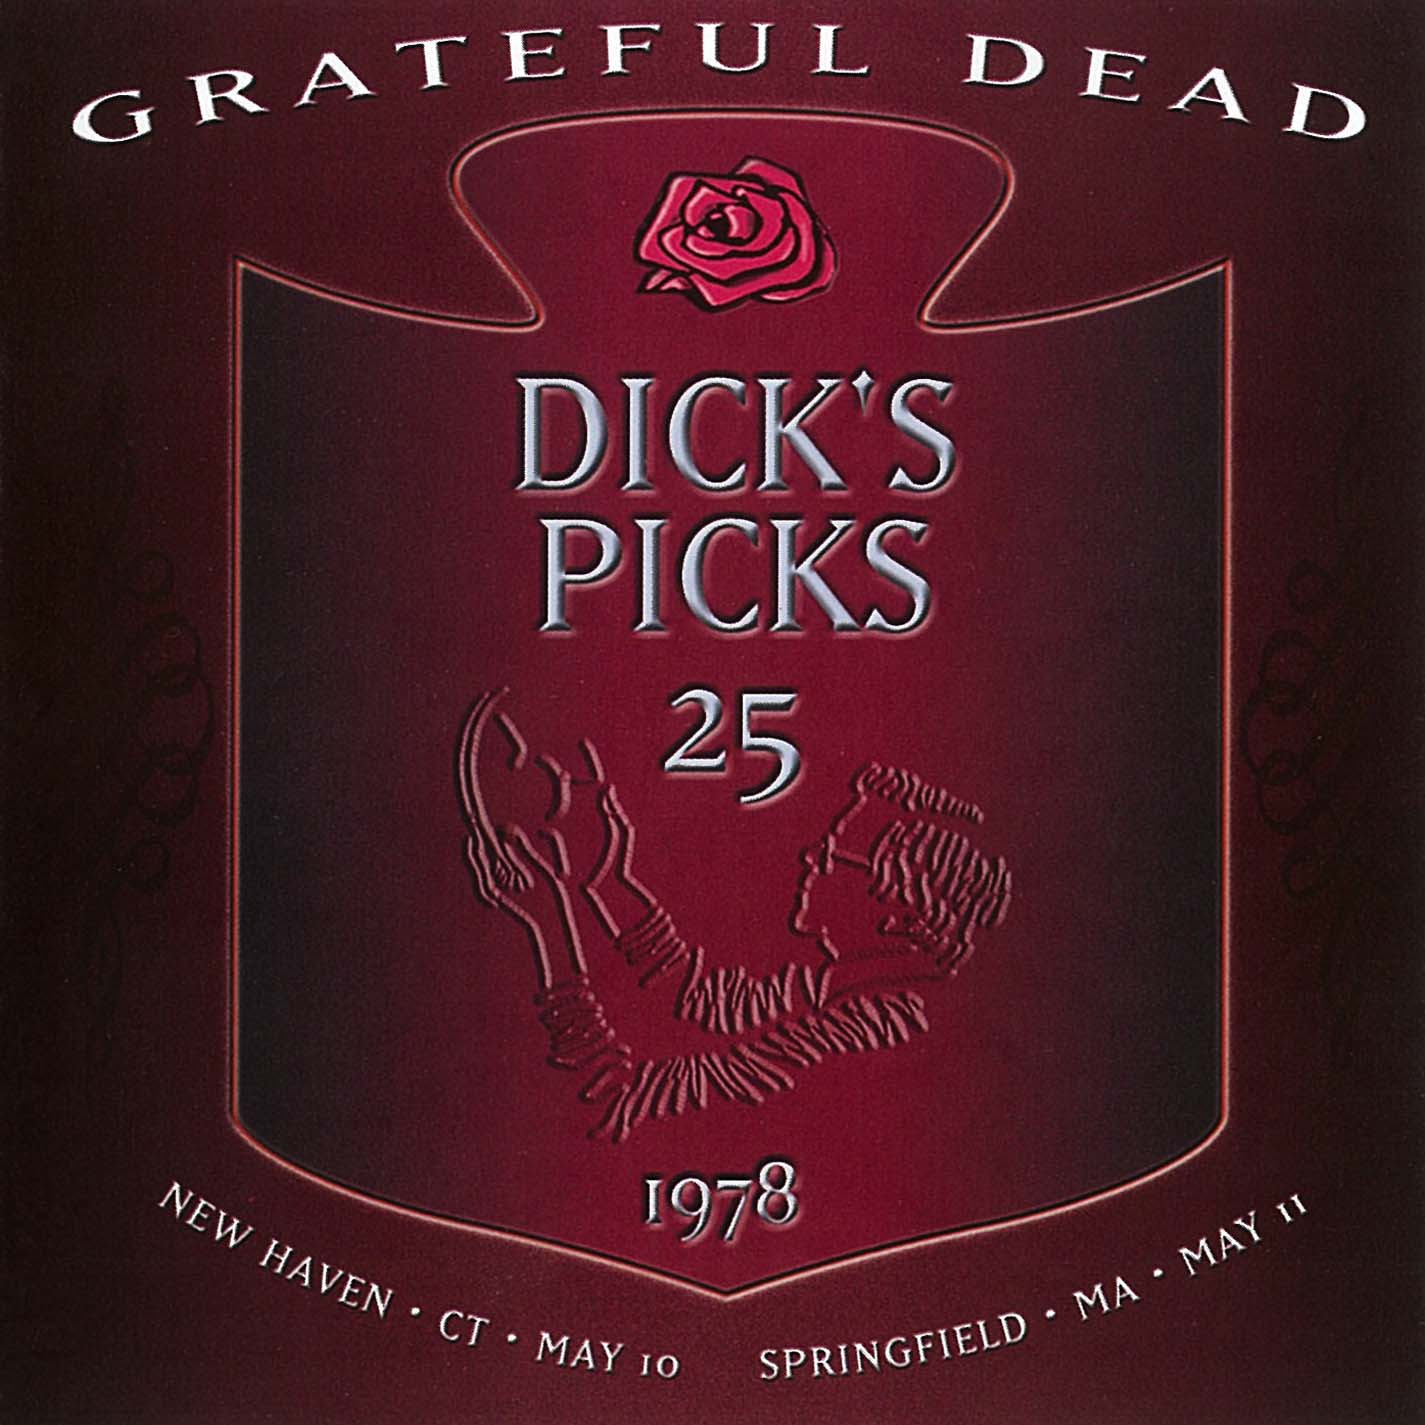 Grateful Dead Dick's Picks 25 album cover artwork